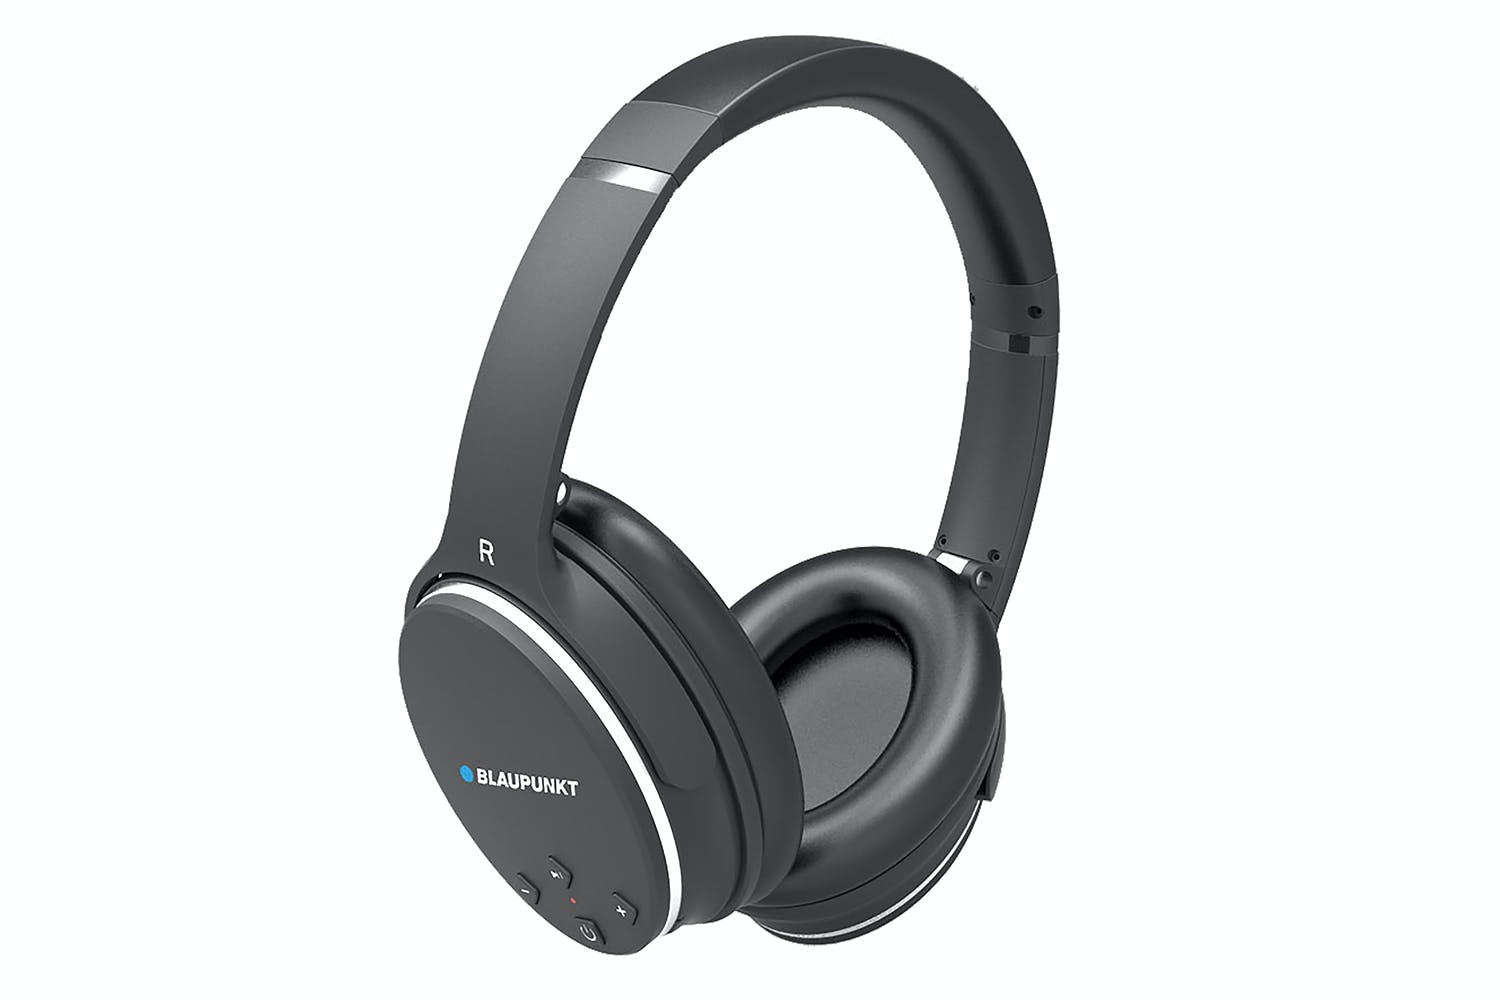 ca35a24abba Blaupunkt Bluetooth Headset | Black | Ireland